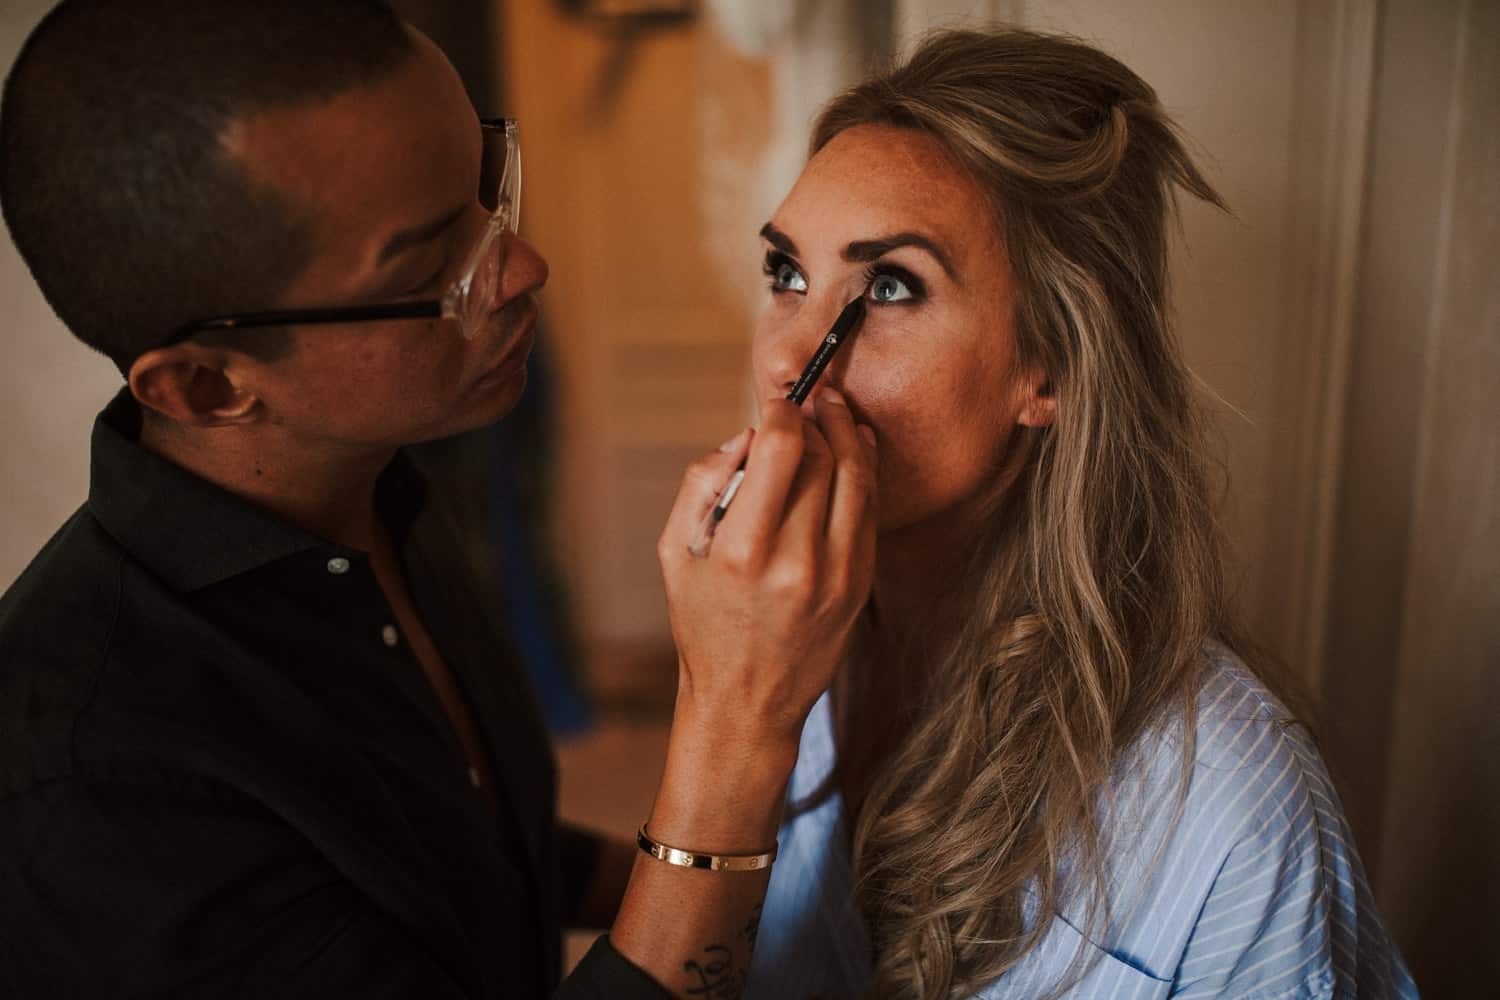 The bride is getting her makeup done.